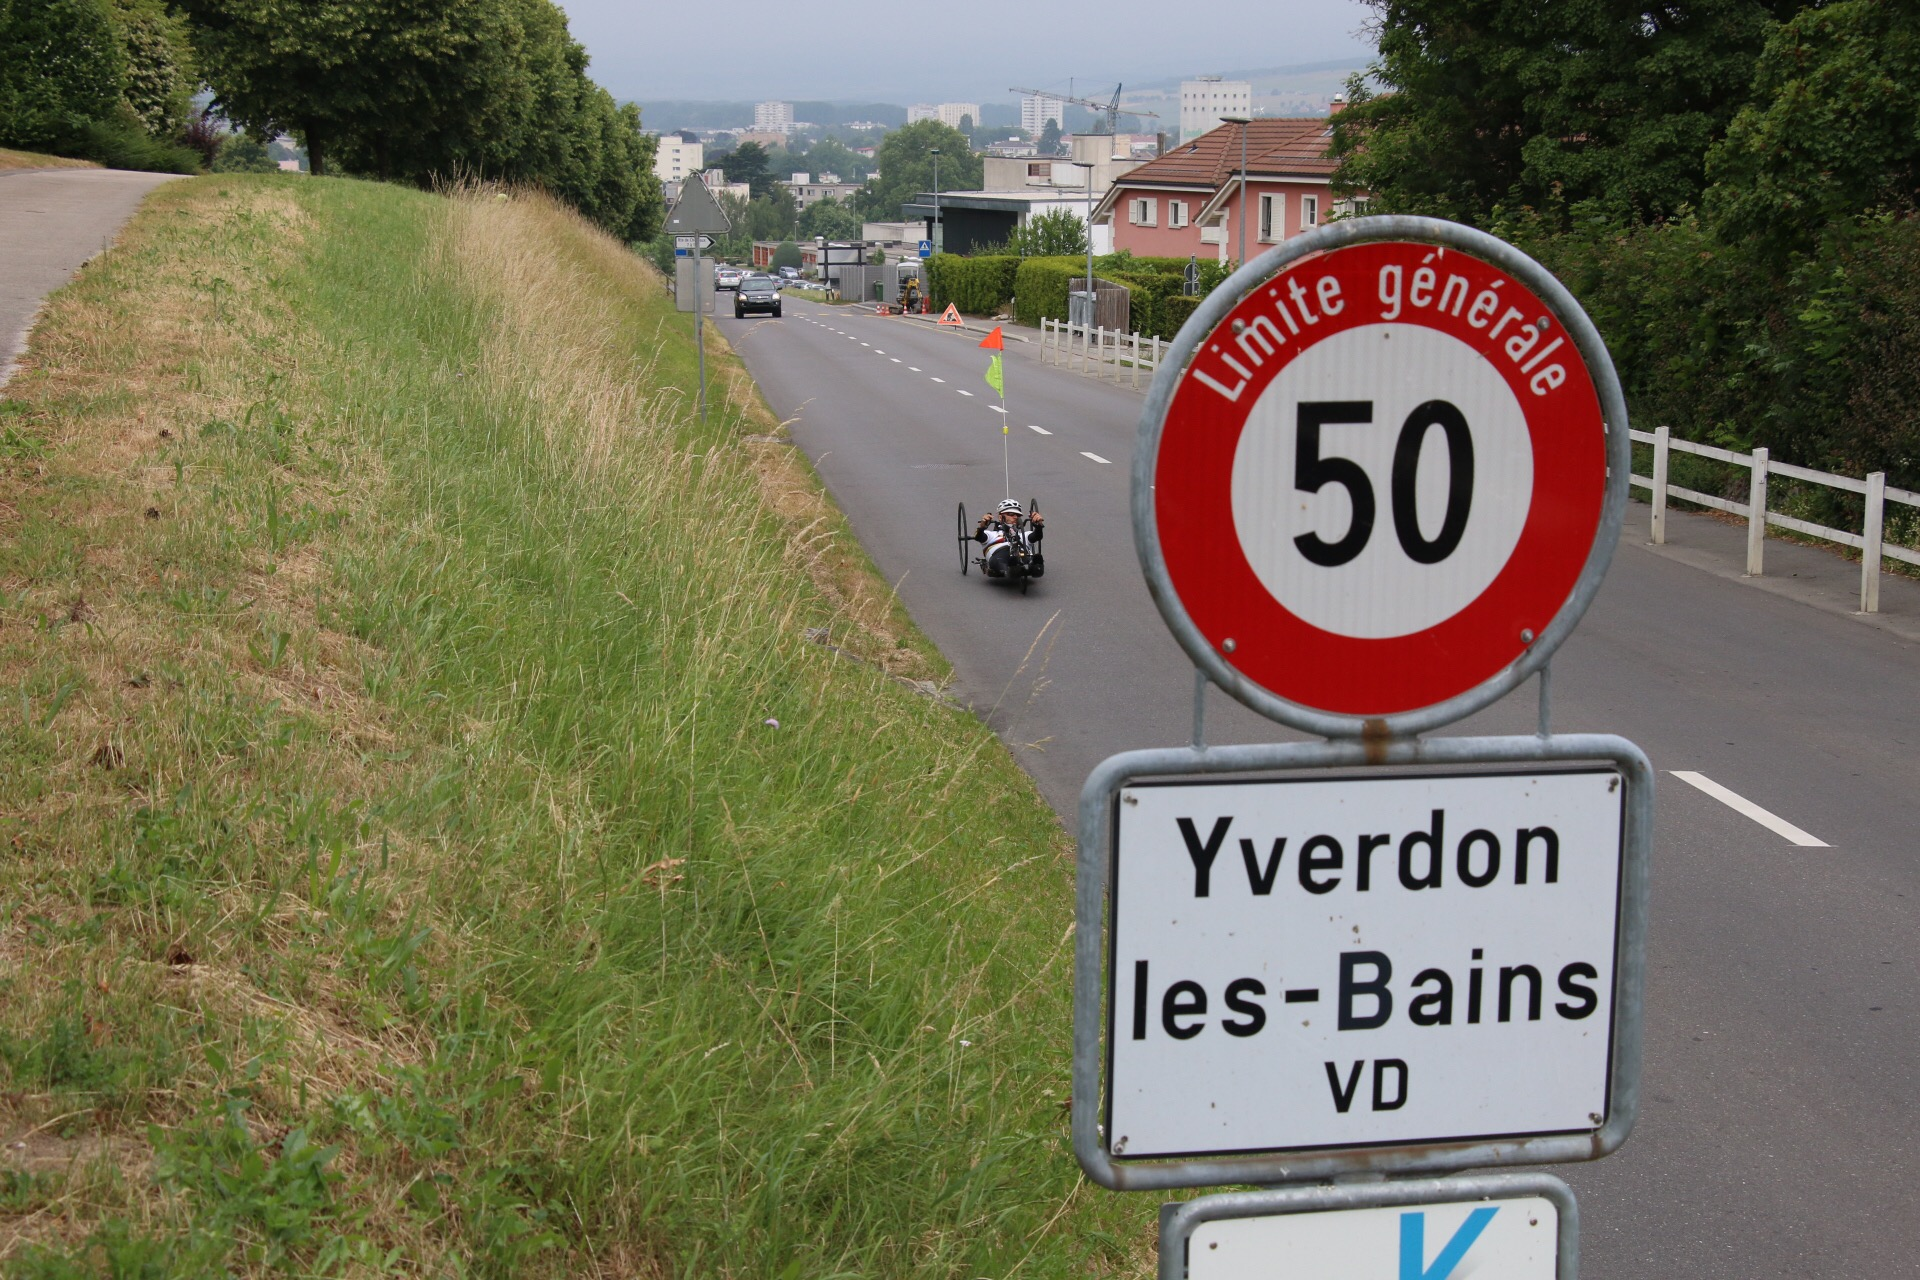 The 14.15km TT route is dead flat but has a persistent head-wind affecting the out-ride section of the circuitat round two of the 2015 UCI Para-cycling Road World Cup in Yverdon-Les-Bains, Switzerland, from 14-16 June © Illse du Preez